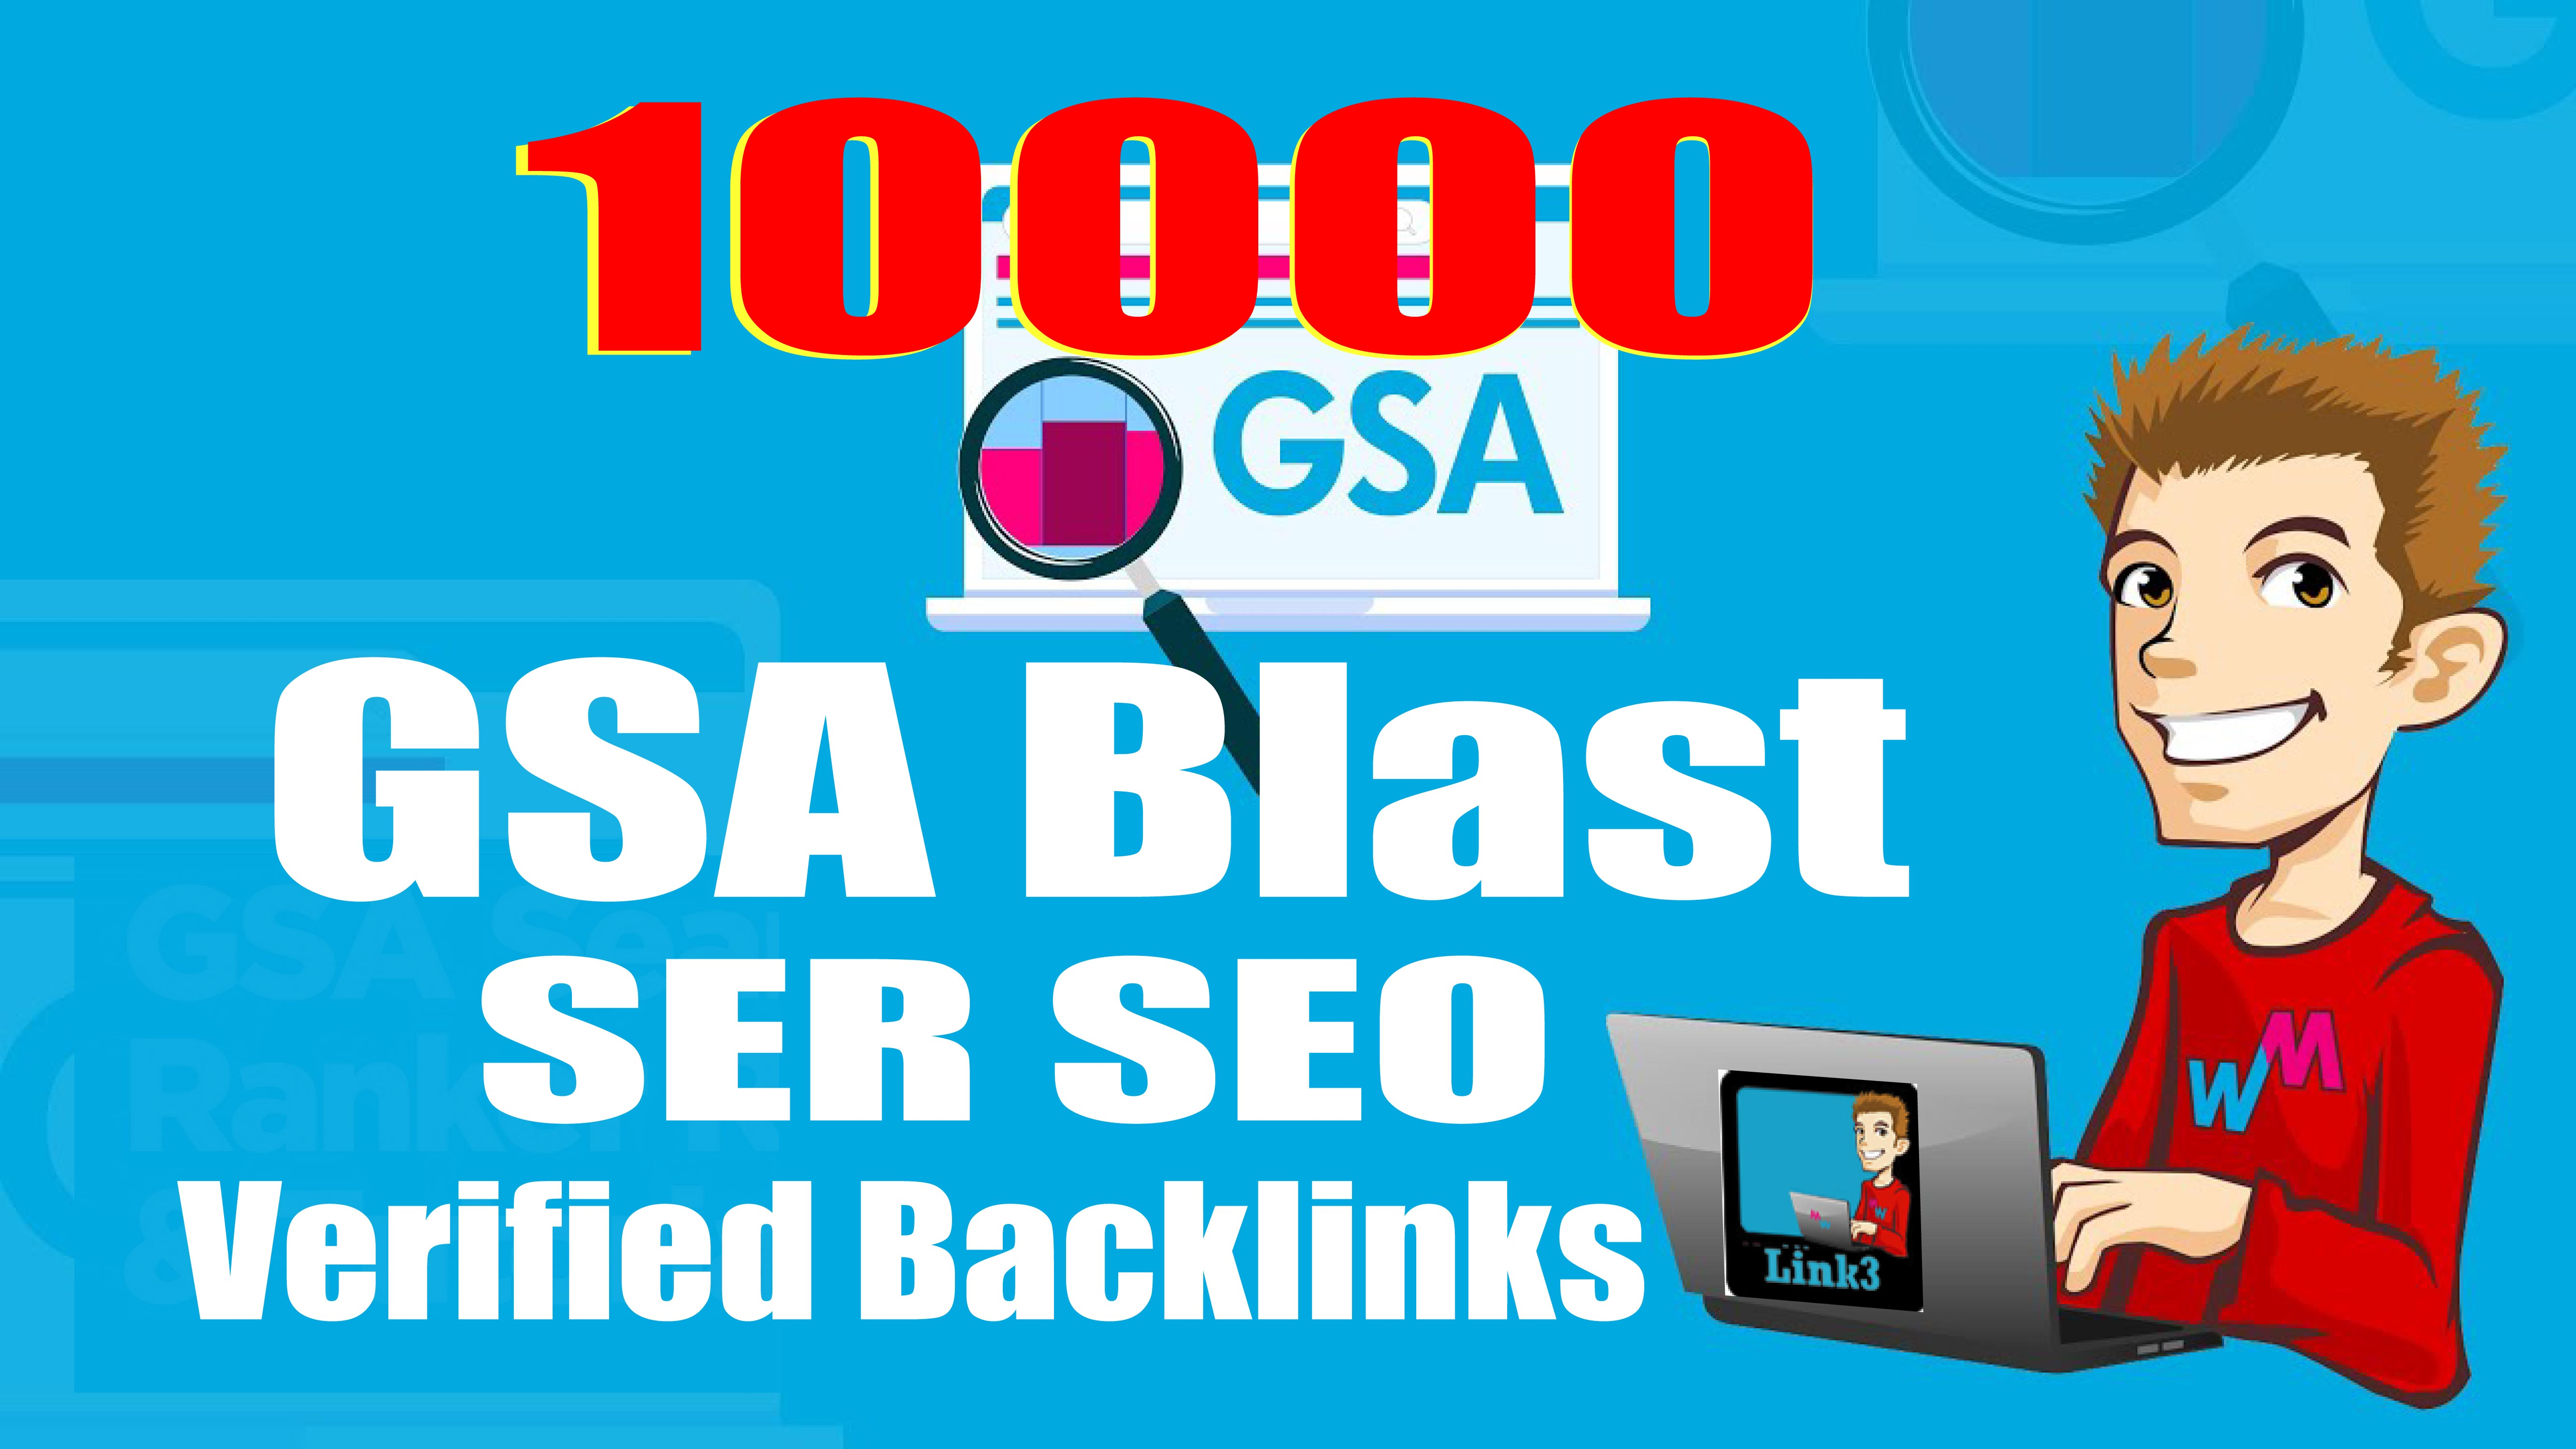 GSA Blast GSA SER To Create 10,000 Verified Backlinks